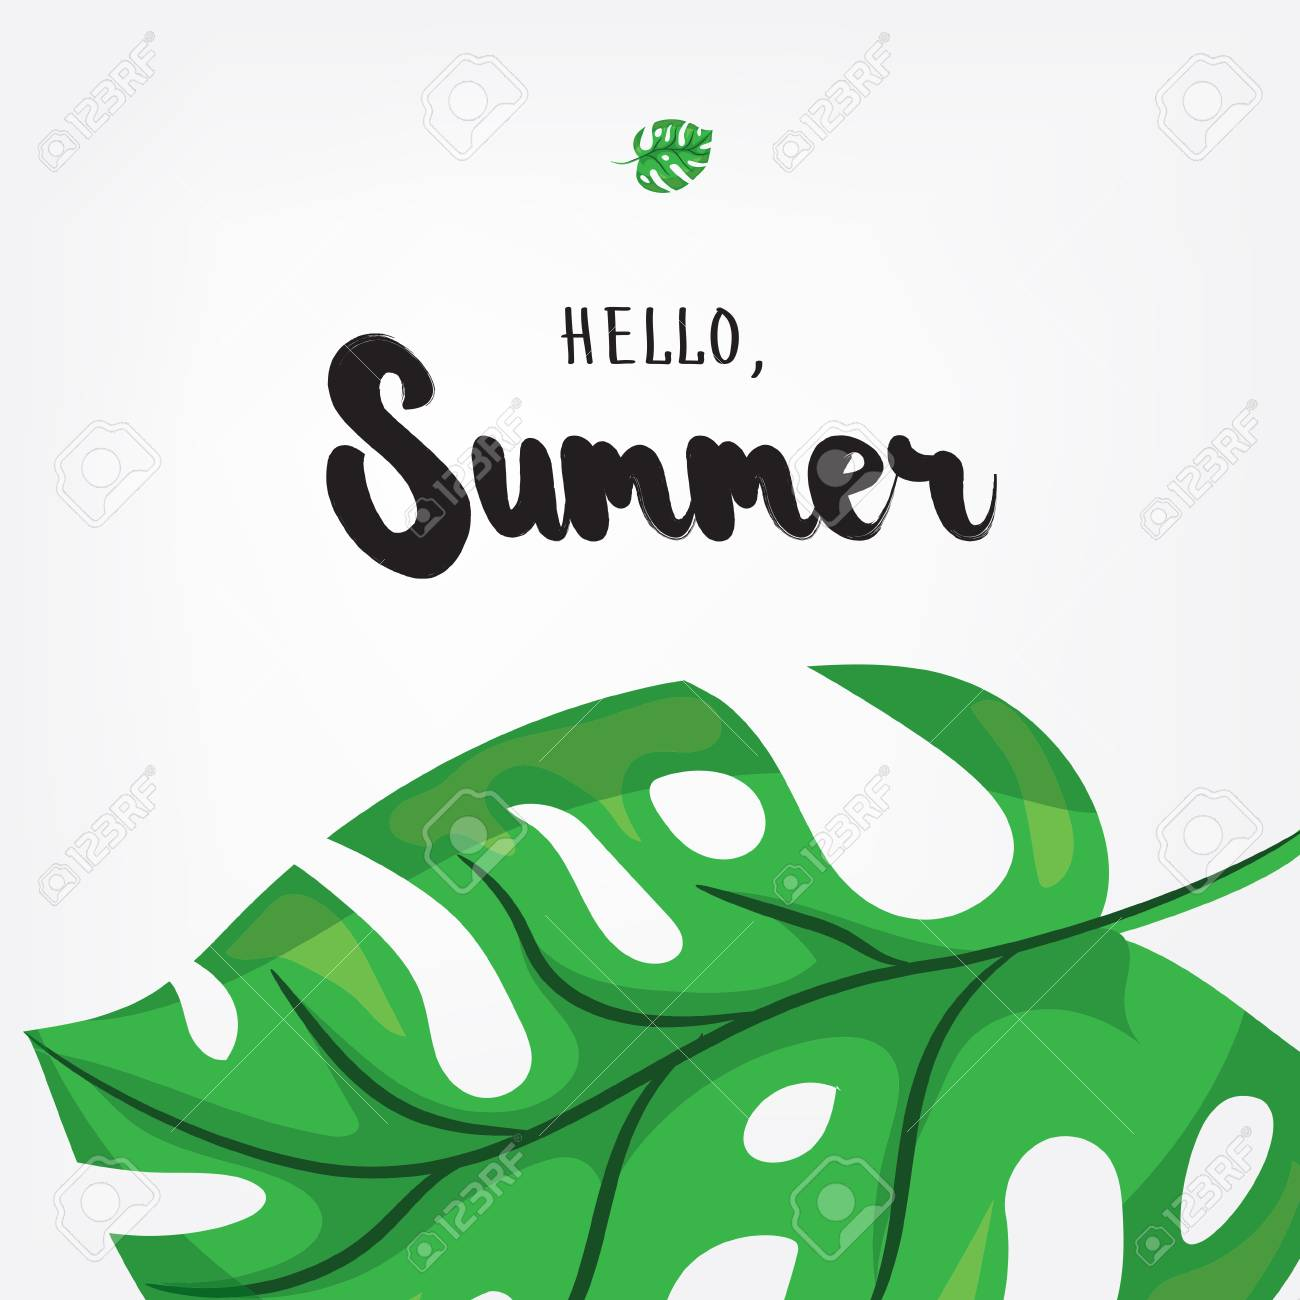 Hello, Summer. Holiday Greeting Card With Monstera Tropical Leaves And  Calligraphy Elements. Handwritten